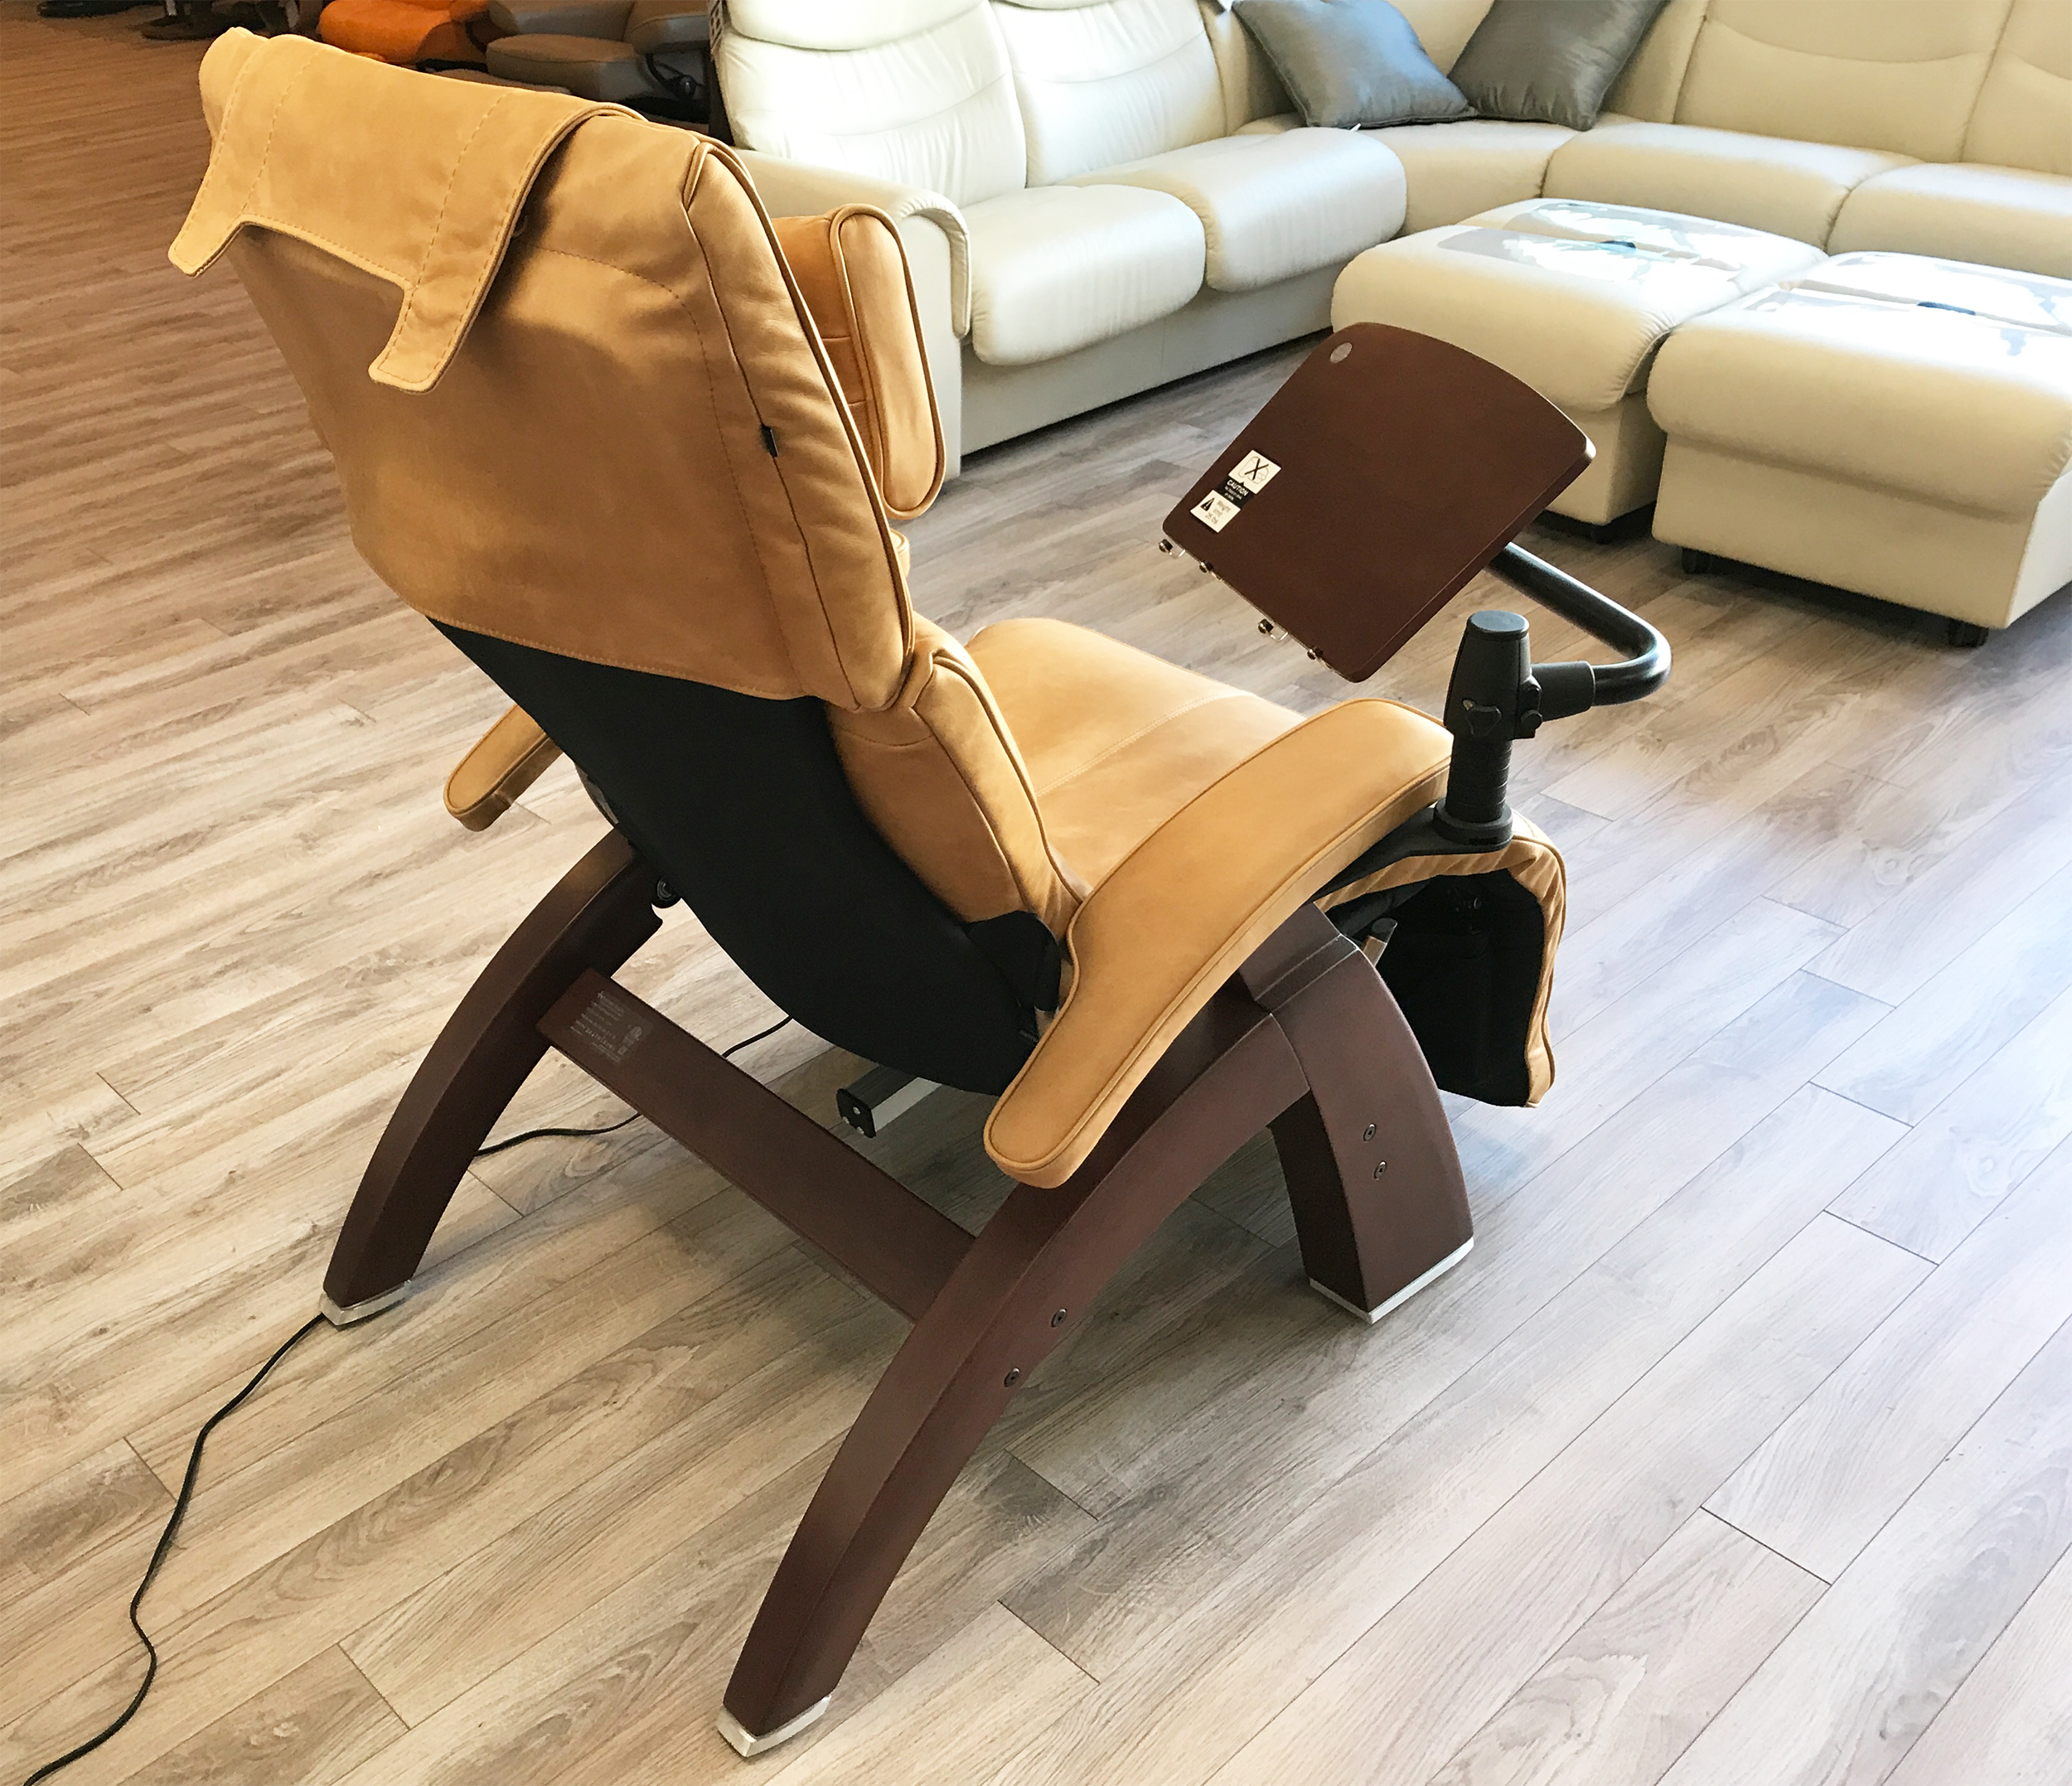 Perfect Chair PC Laptop puter Desk Table for the Perfect